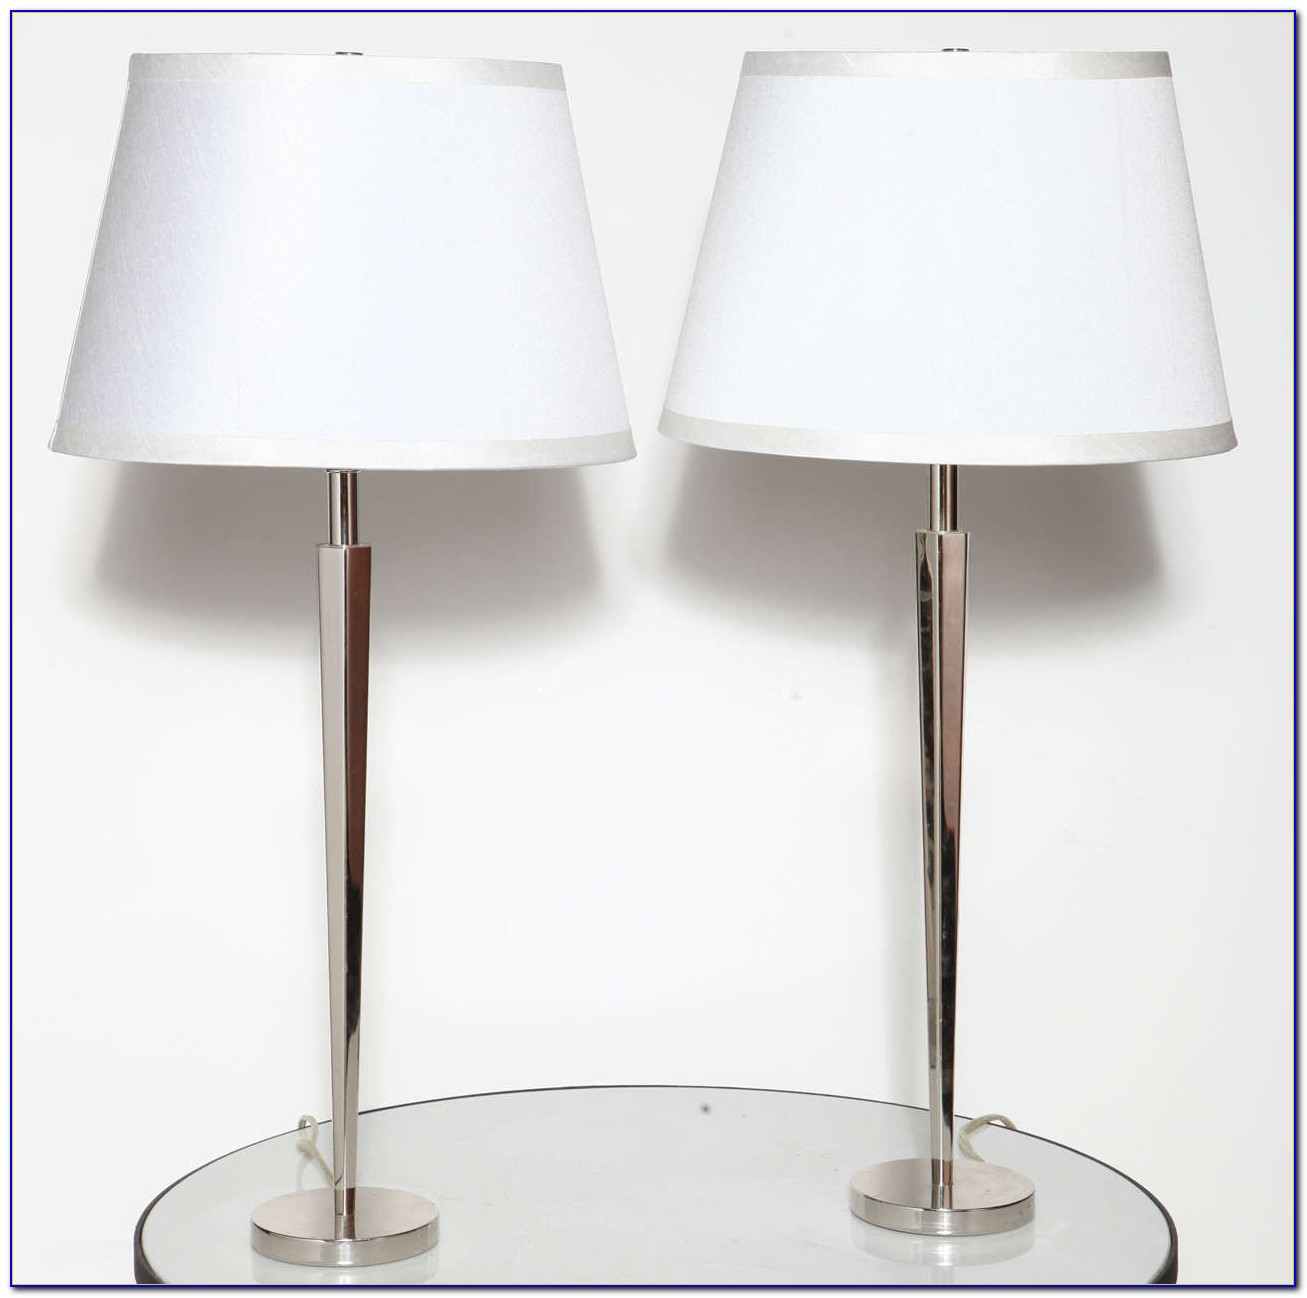 Barbara Barry Statuette Floor Lamp